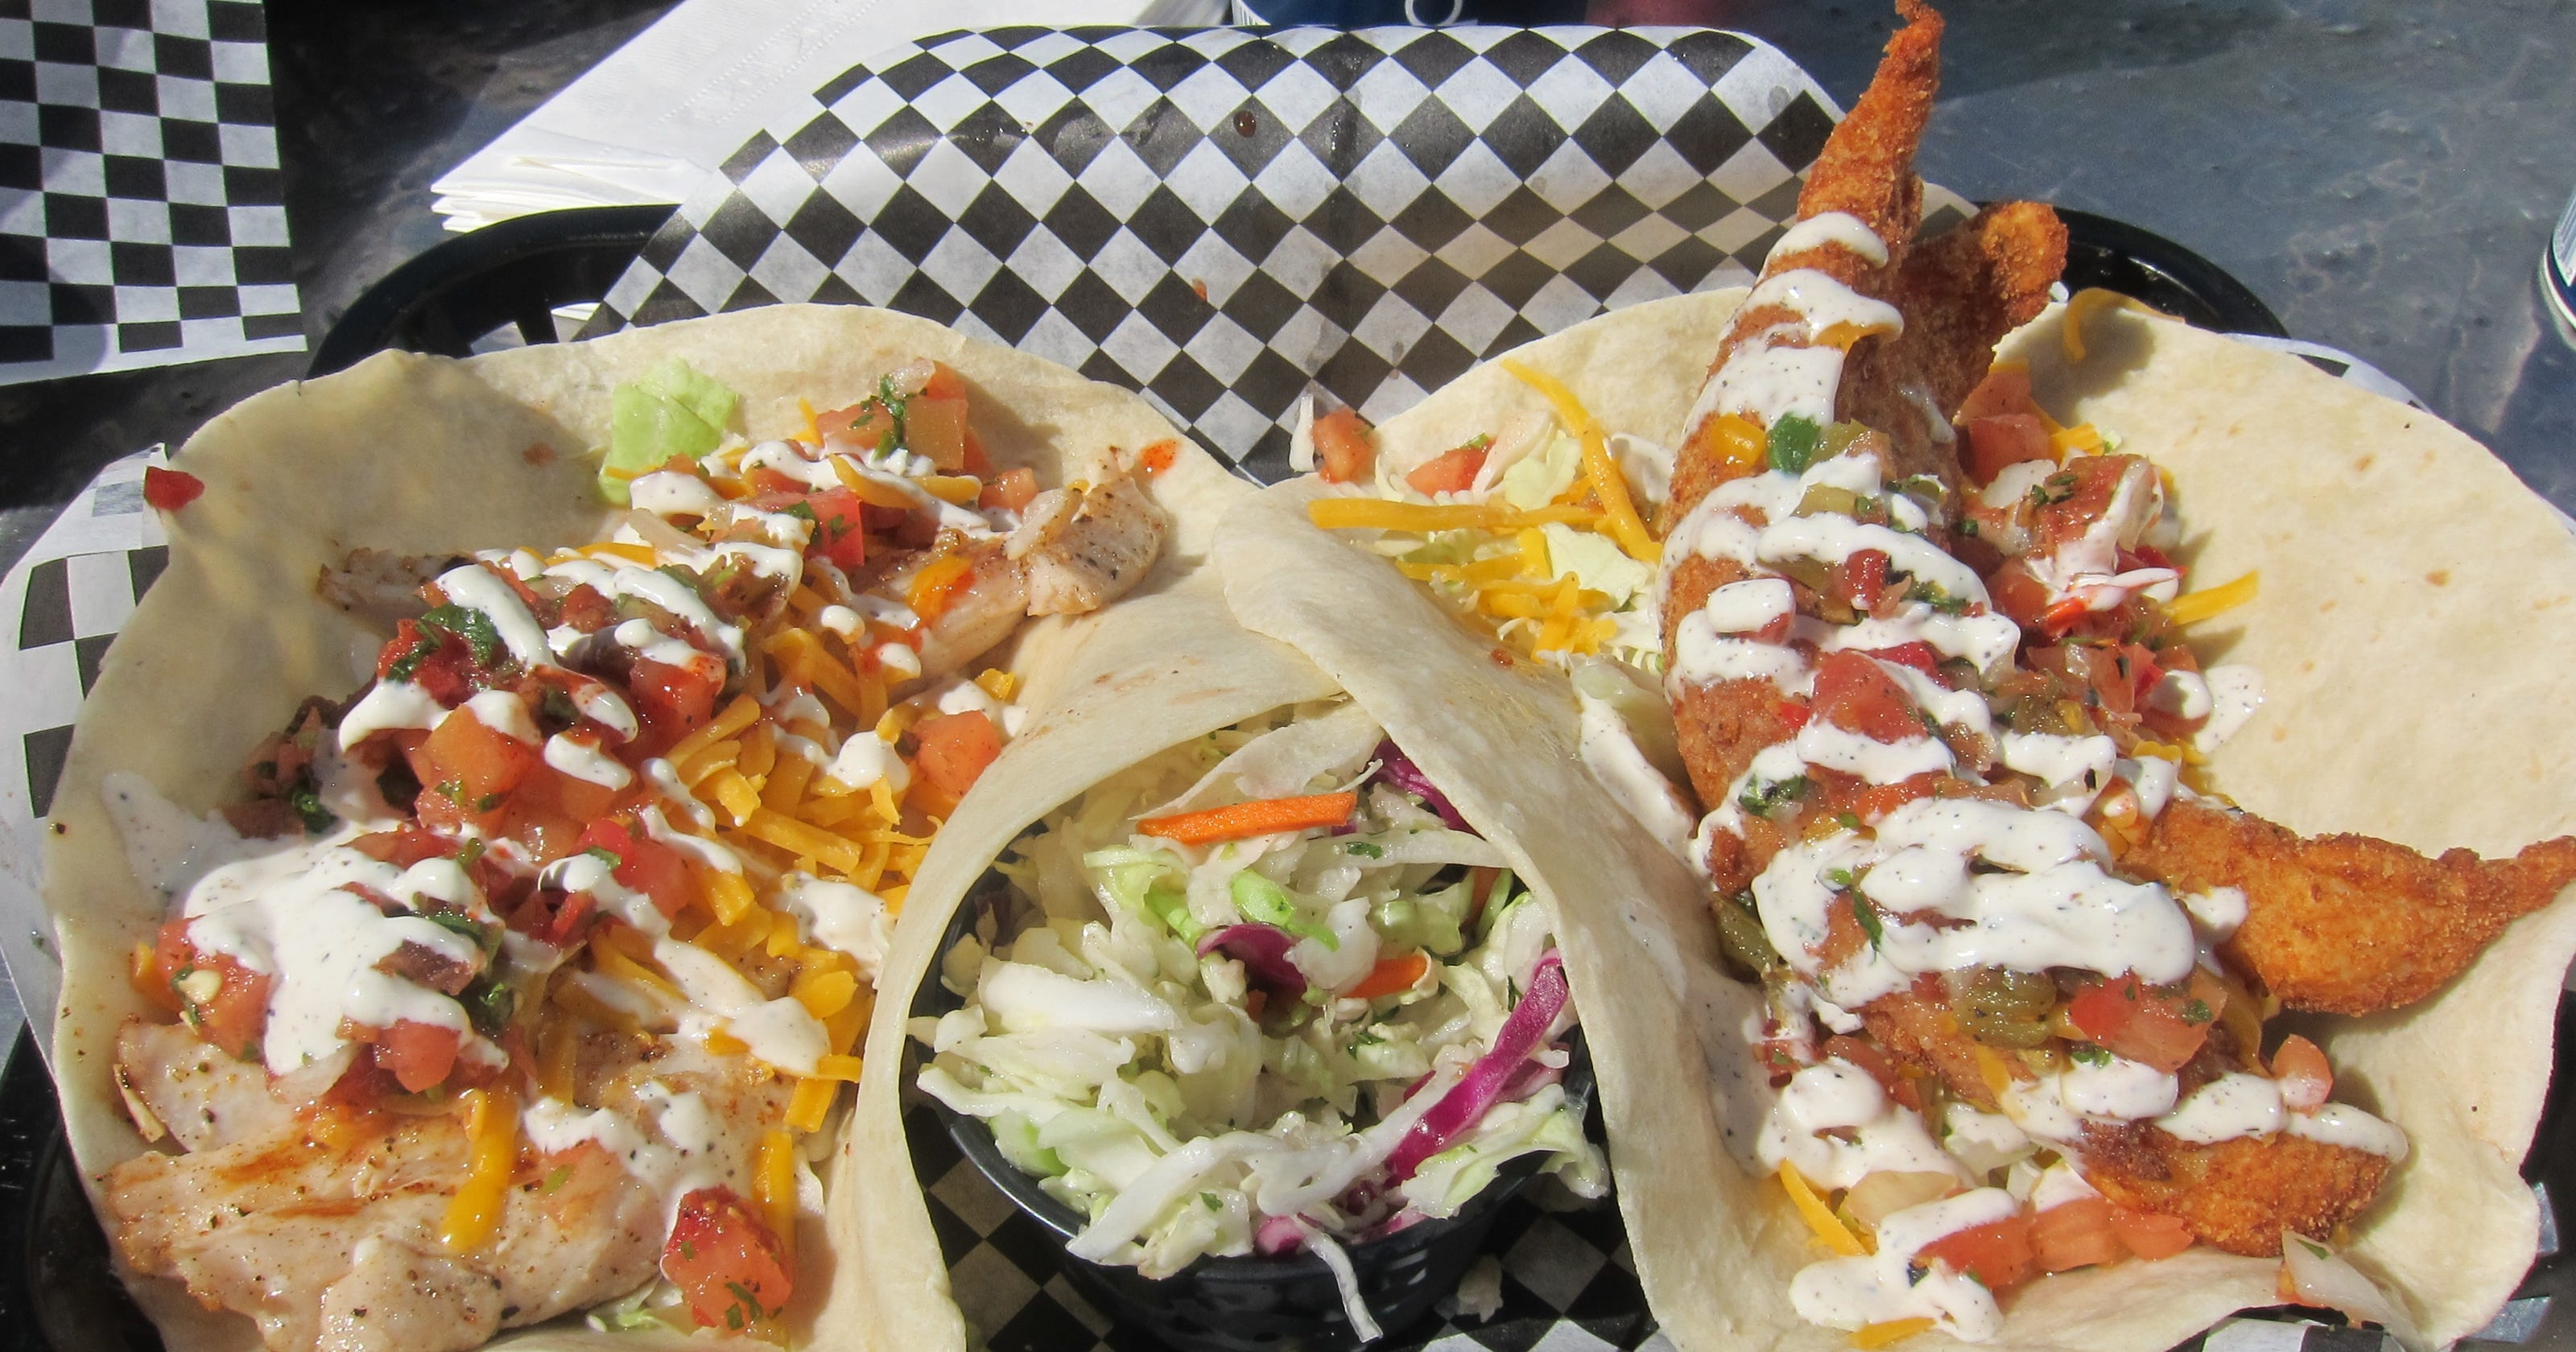 Great American Bites: Tasty fish tacos in prime San Diego location